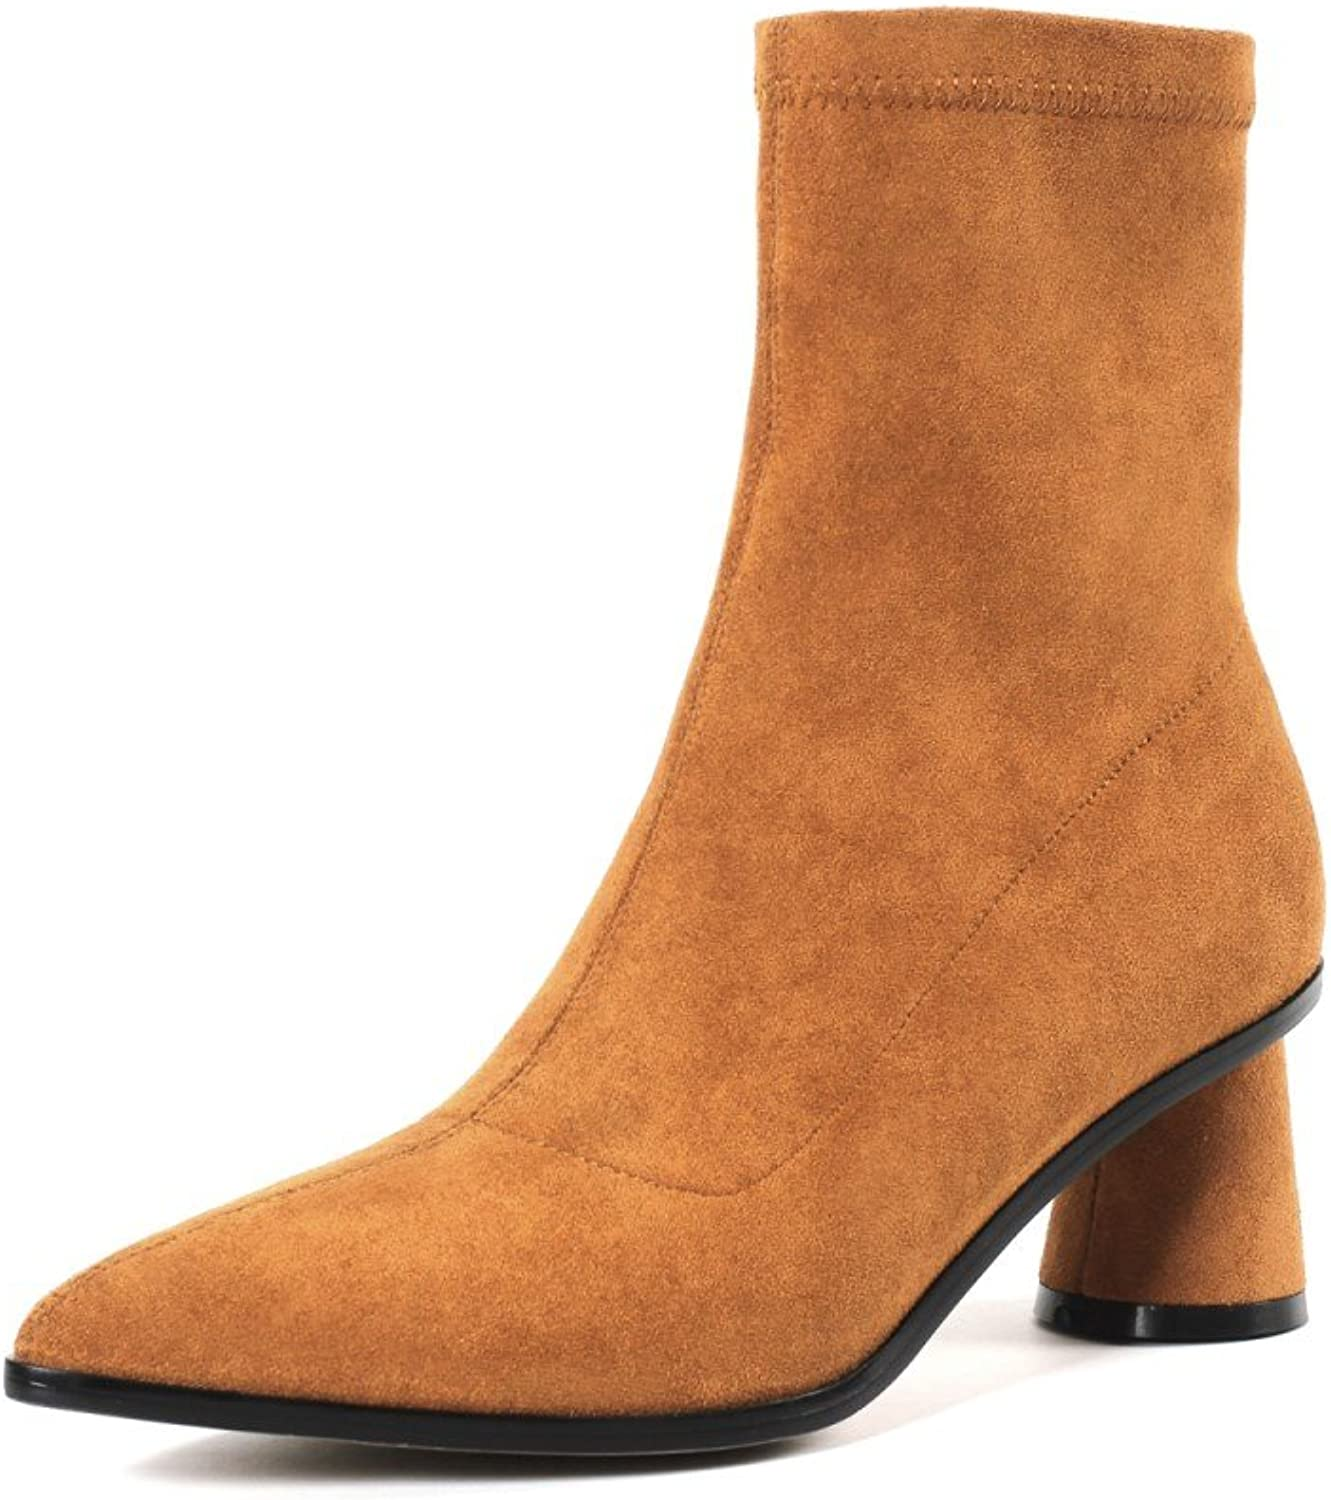 Nine Seven Women's Side Zipper Mid-Calf Boots - Pointed Toe Chunky Heel - Handmade Graceful Ankle Boots